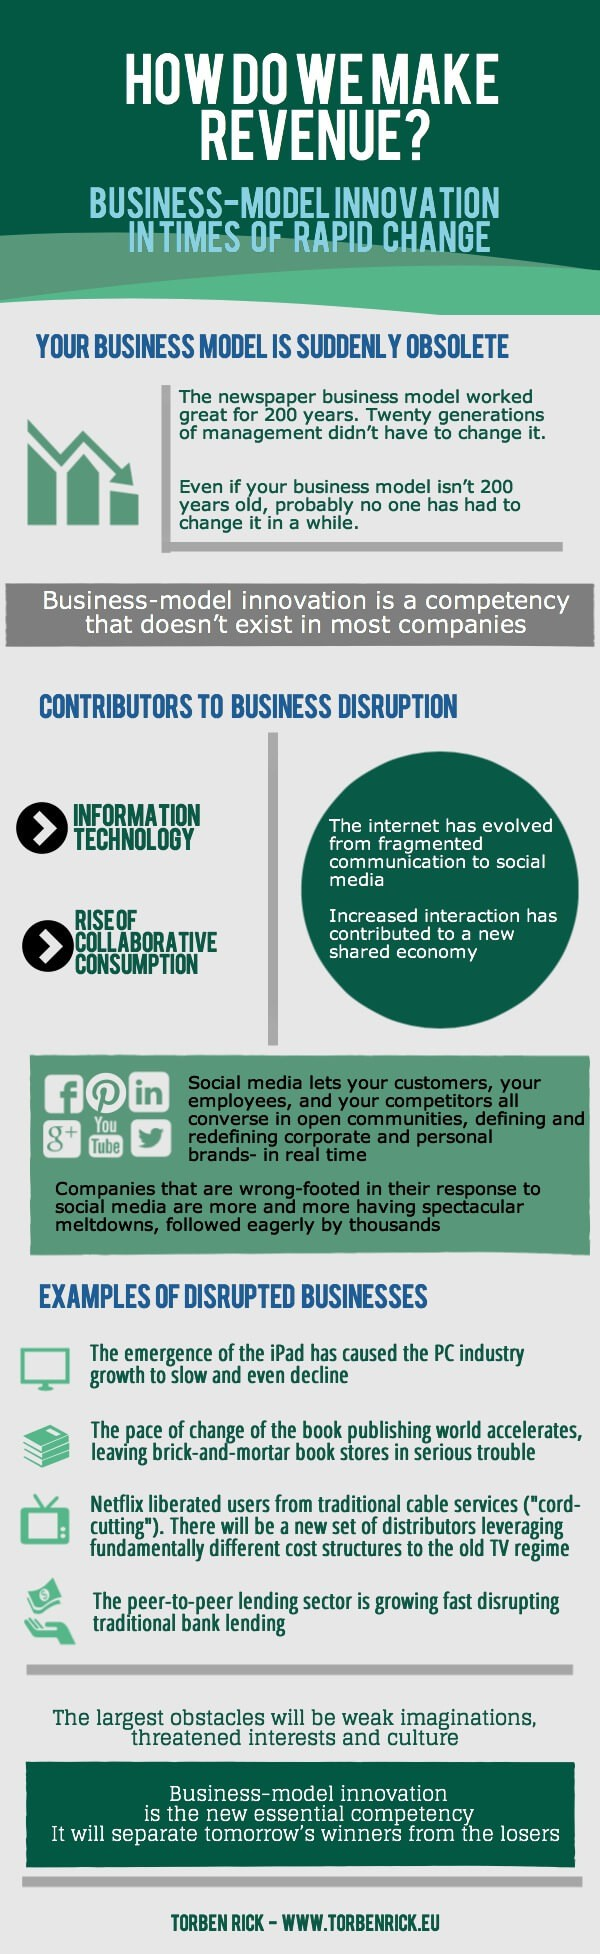 Infographic: Don't underestimate the potential of digital disruption - Torben Rick